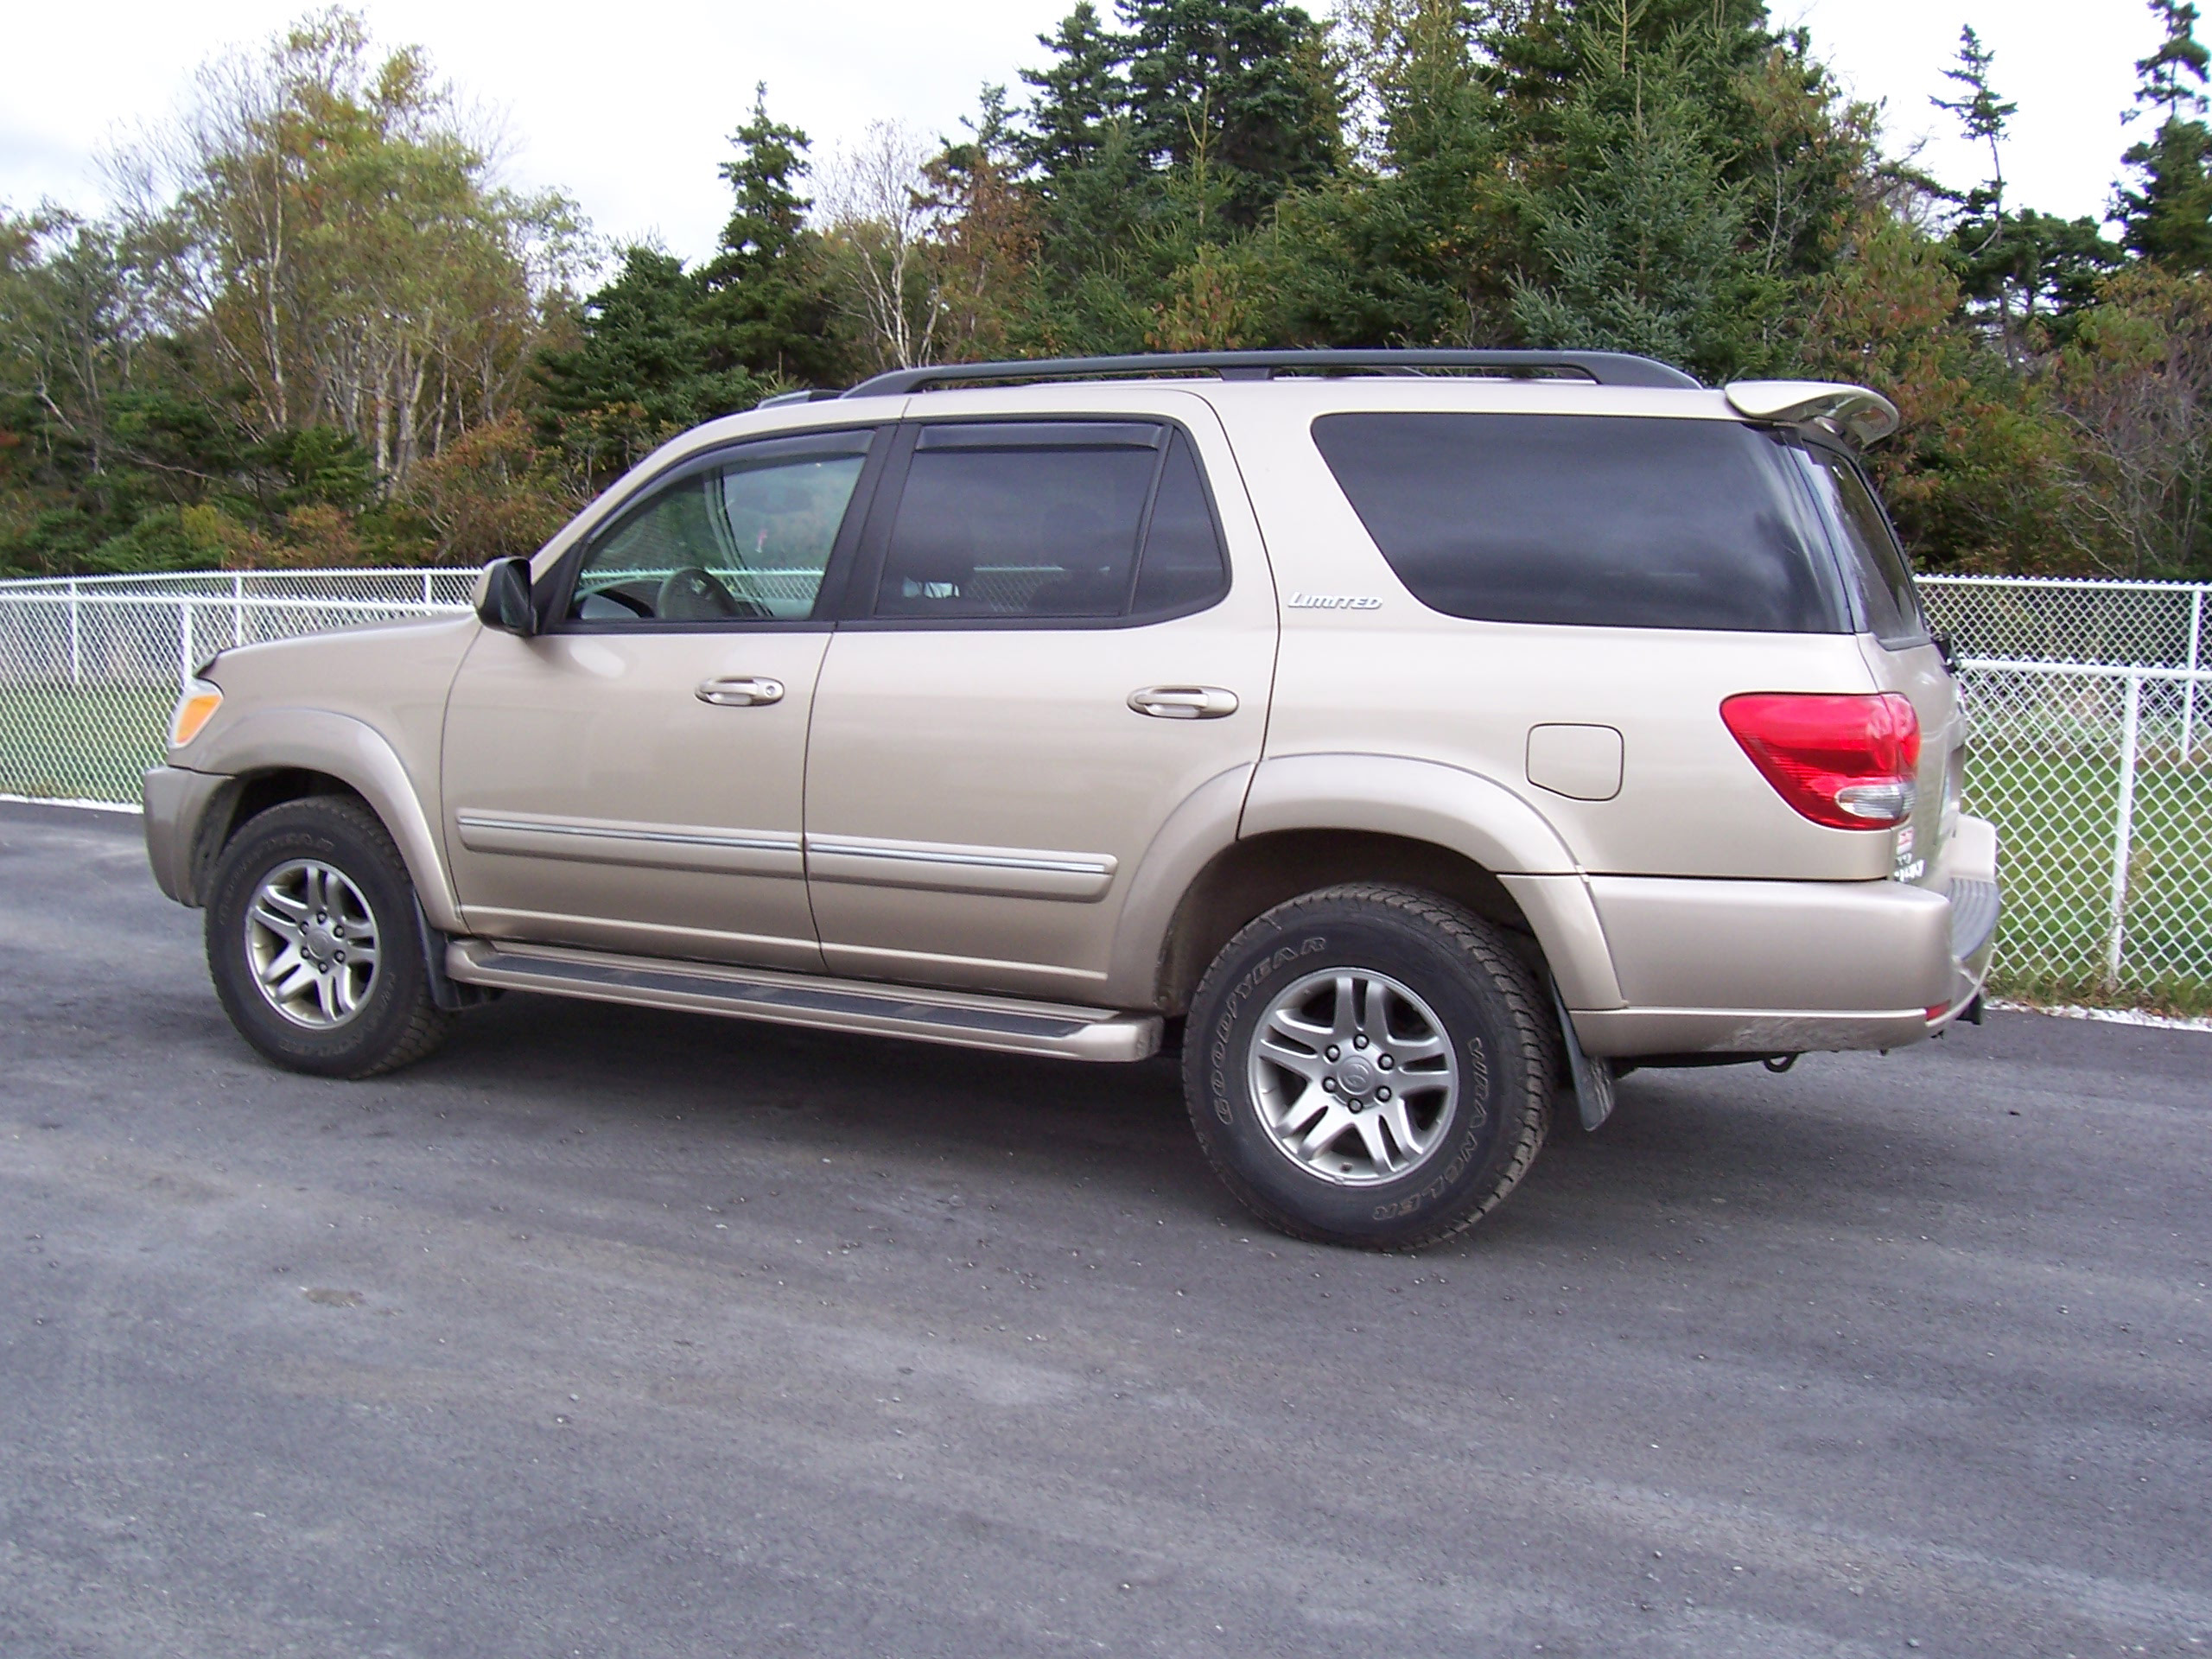 download car sequoia image of bumper toyota picture blogs pinterest